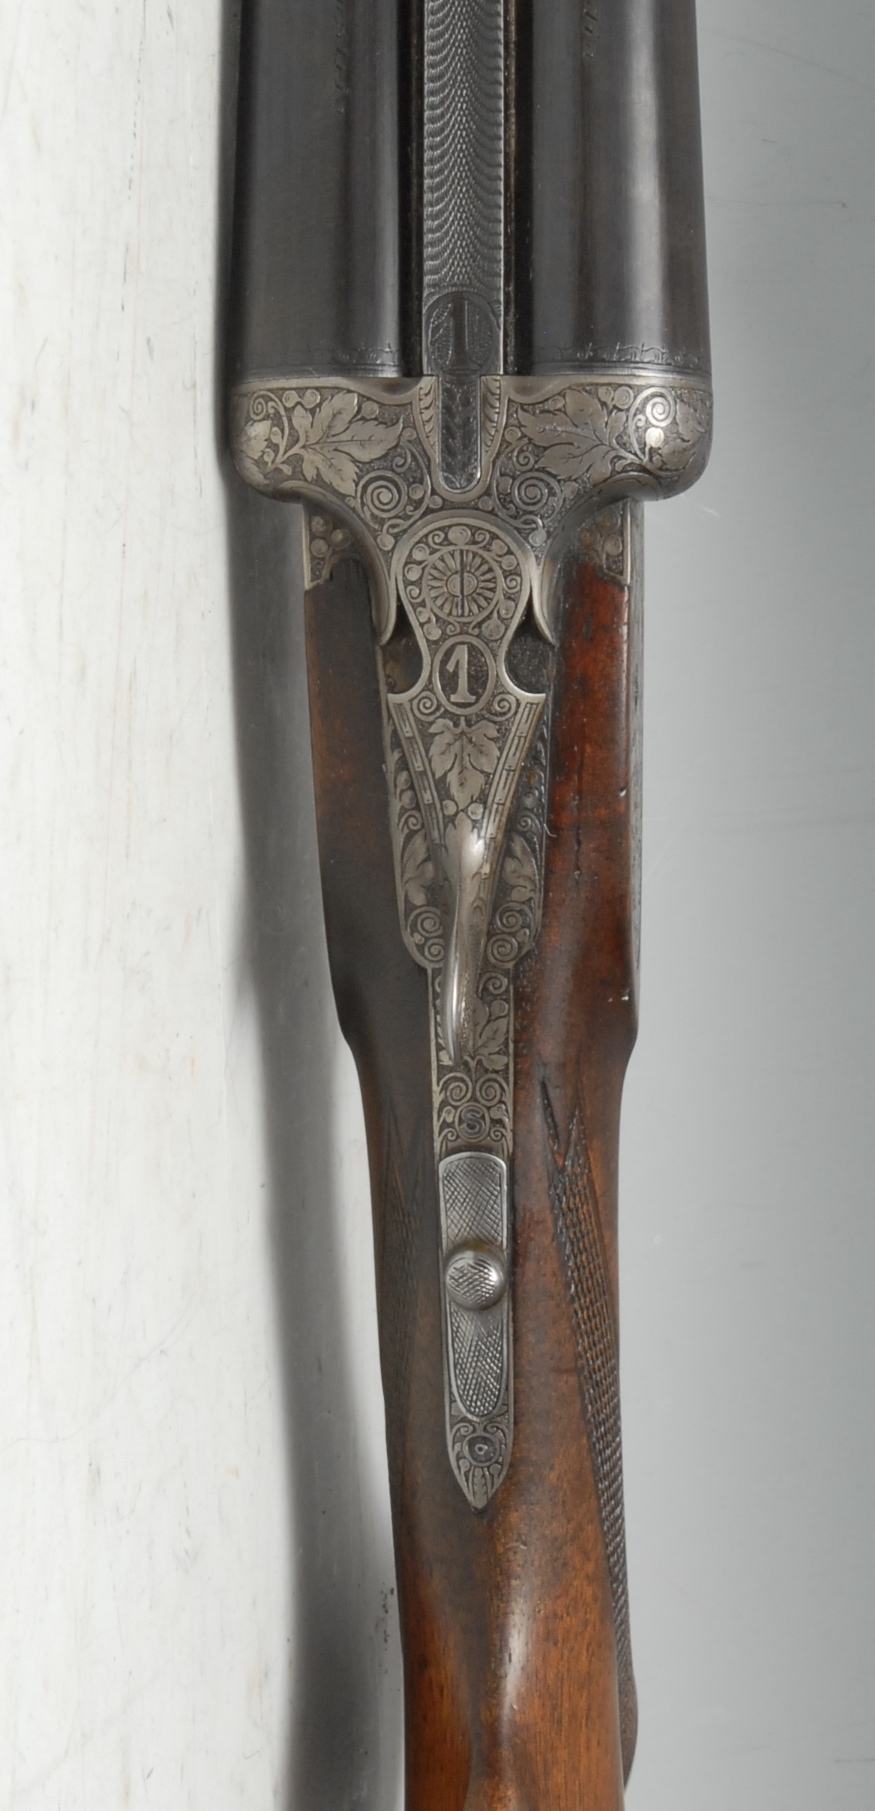 12 Bore Side by Side side lock ejector shotgun serial number 33150. Barrel length 28 inches. - Image 3 of 4